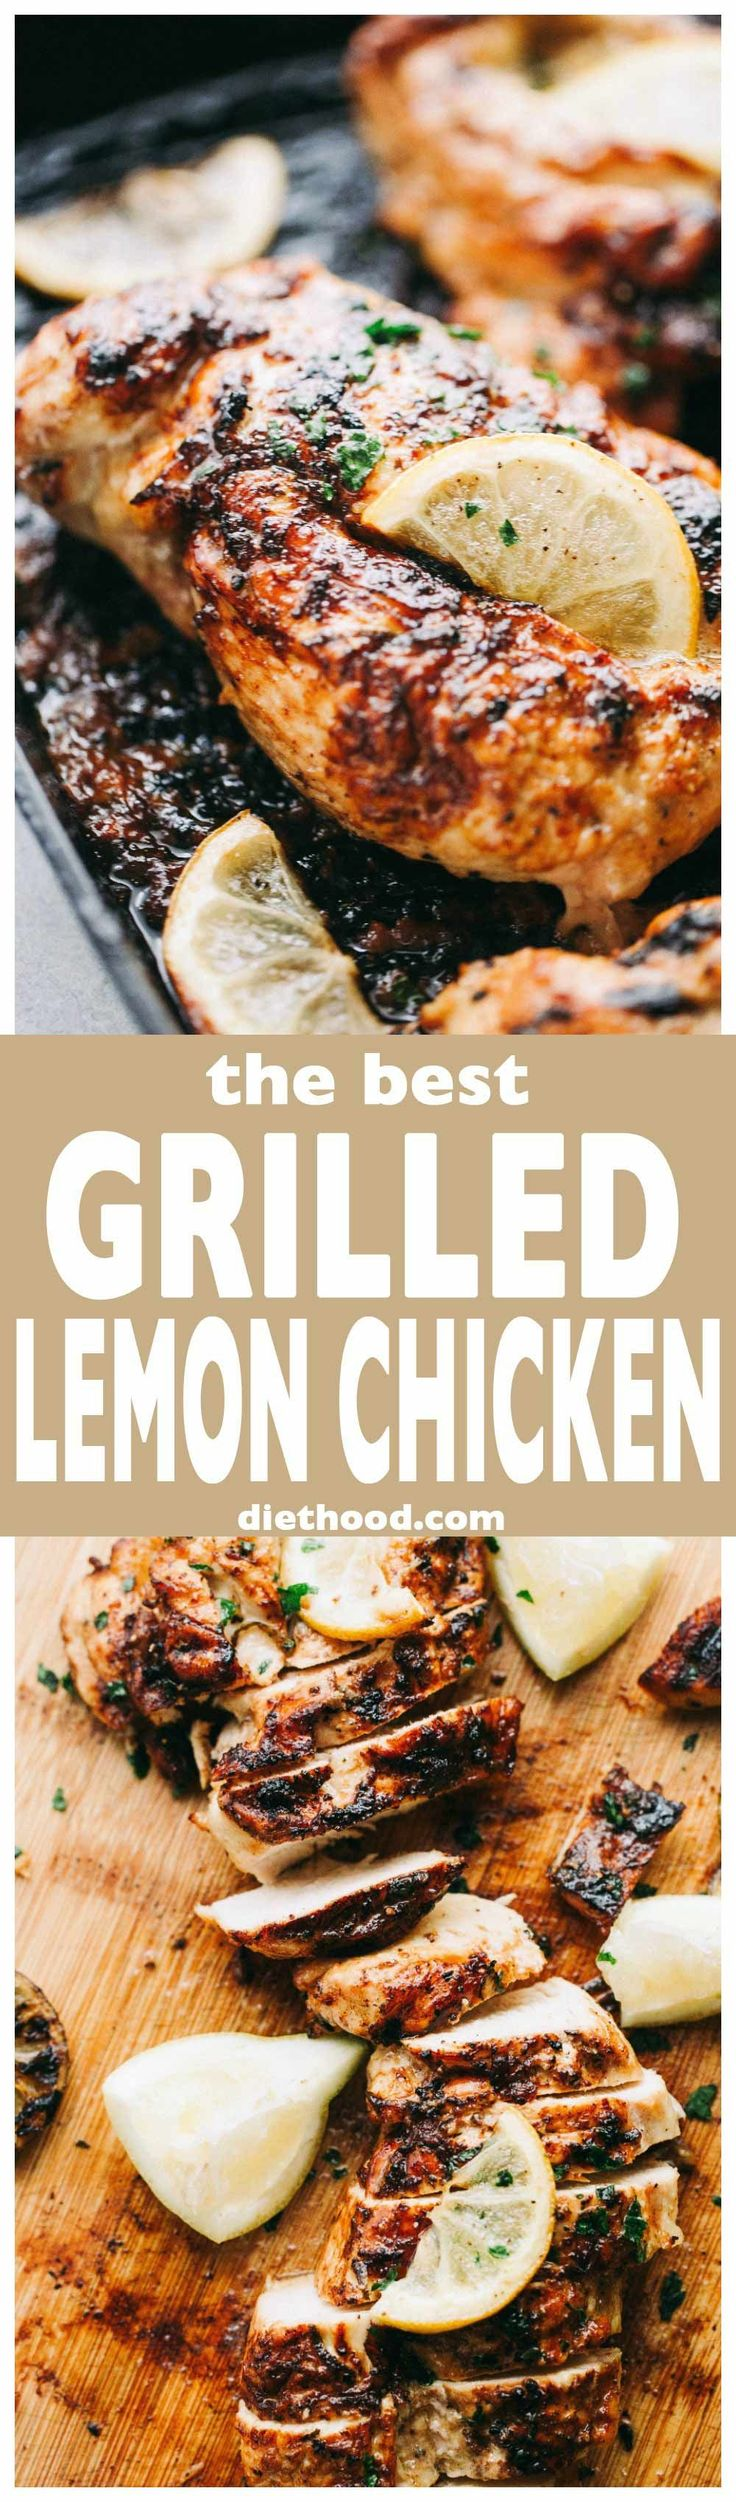 he Best Grilled Lemon Chicken Recipe – Perfectly tender, juicy, healthy lemon chicken marinated in a delicious lemon mixture, and prepared on the grill.